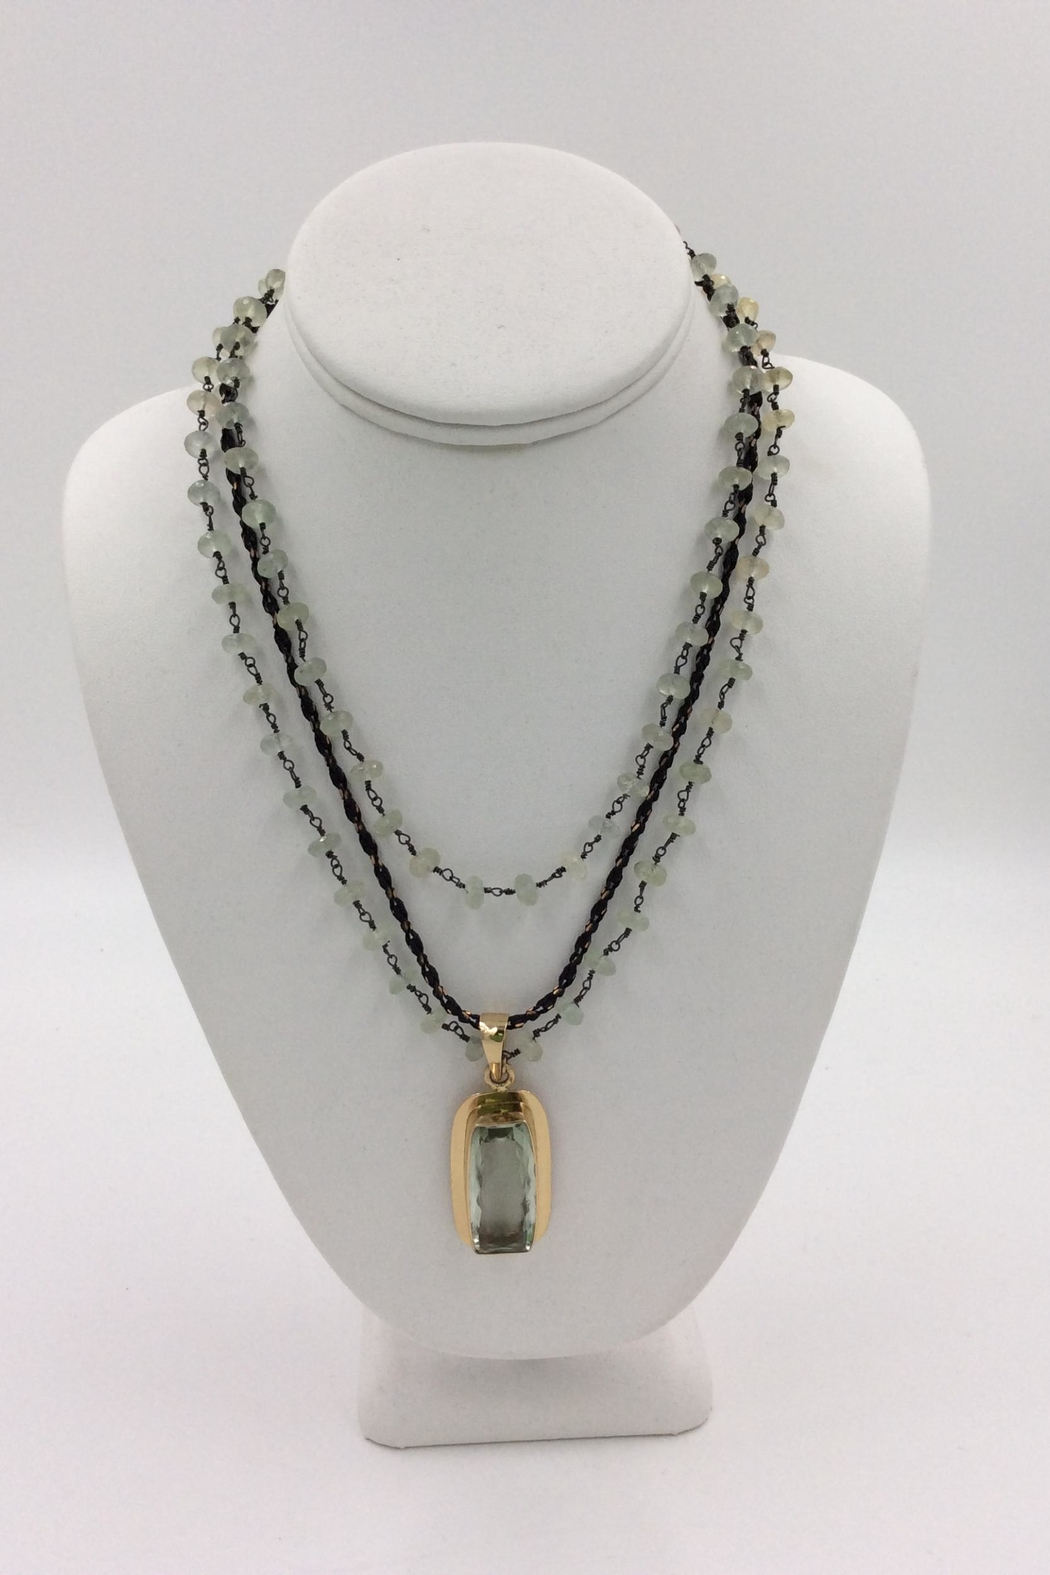 signature of amethyst protection lightweight product green and for img with labradorite purpose clarity necklace